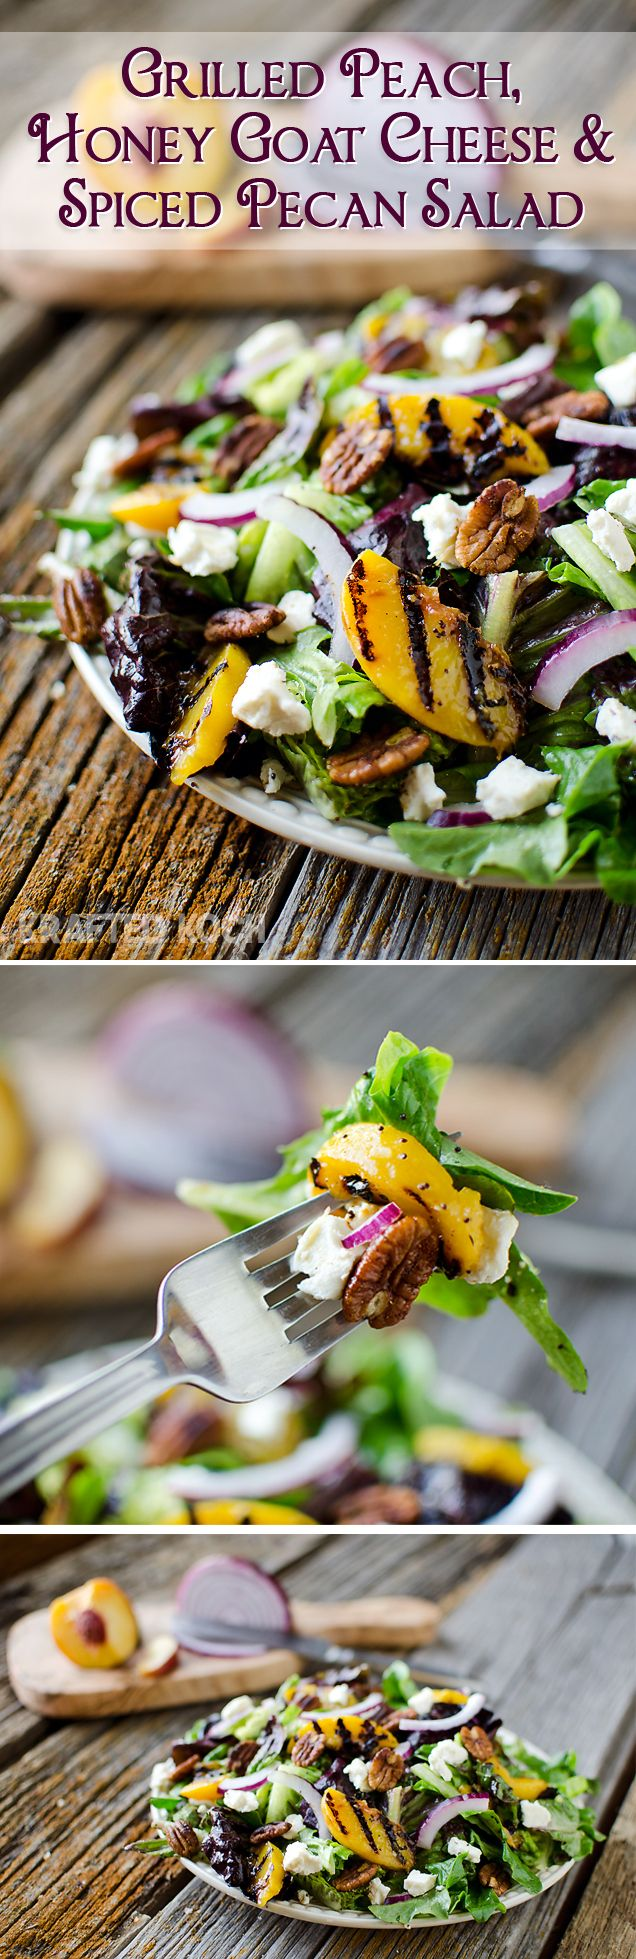 Grilled Peach, Honey Goat Cheese & Spiced Pecan Salad -